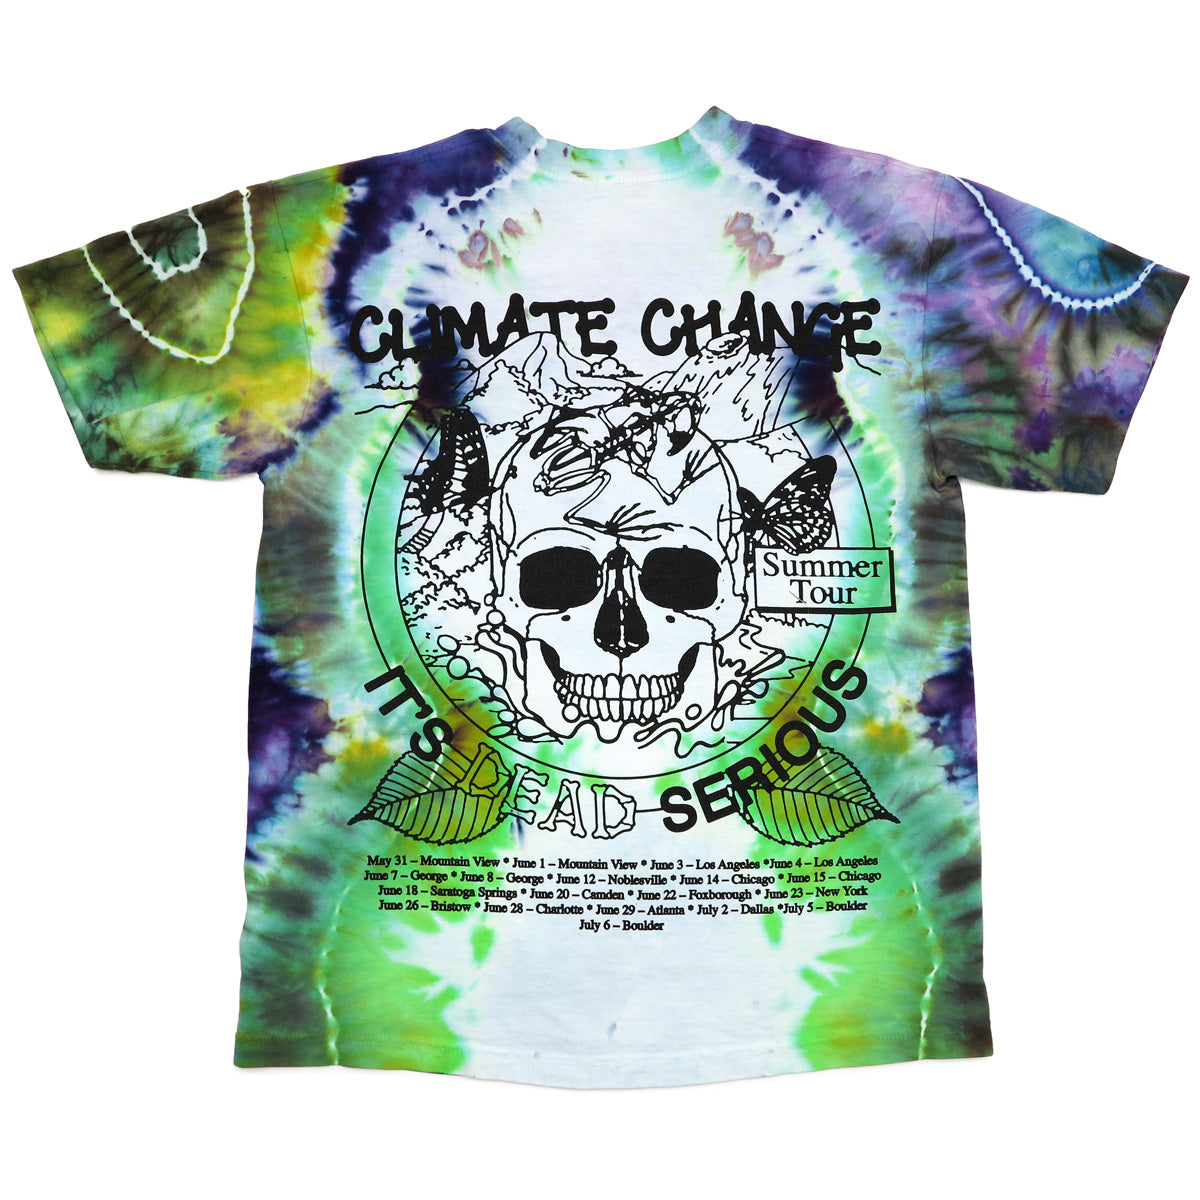 b1308107a3 ... Climate Change is Dead Serious (special edition dye by Cosmic Cove,  each one is